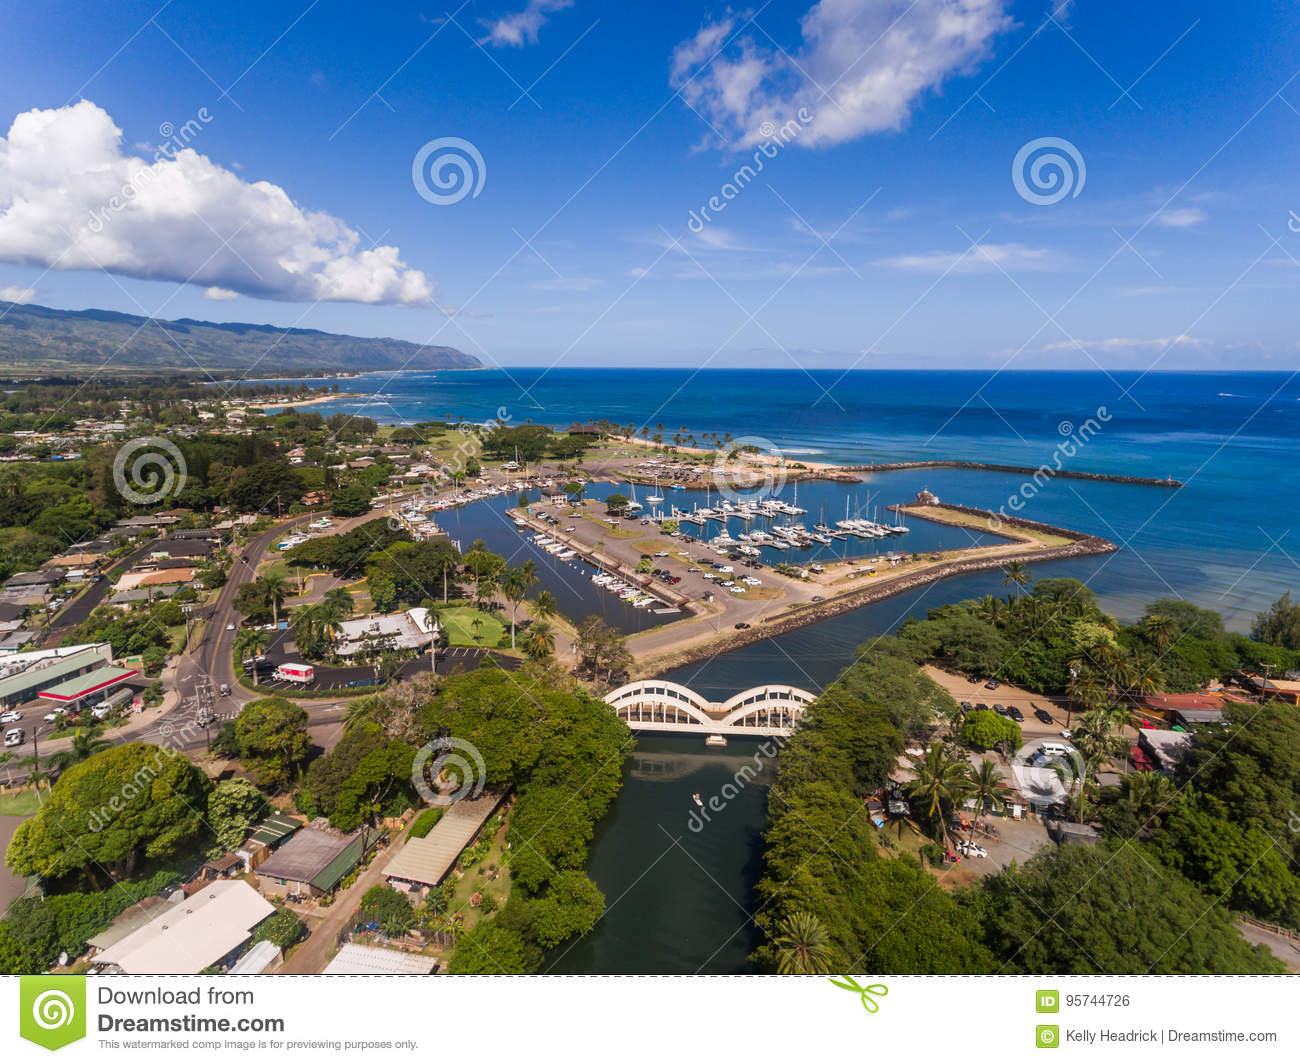 Name:  aerial-view-haleiwa-town-harbor-small-boat-anahulu-river-bridge-95744726.jpg